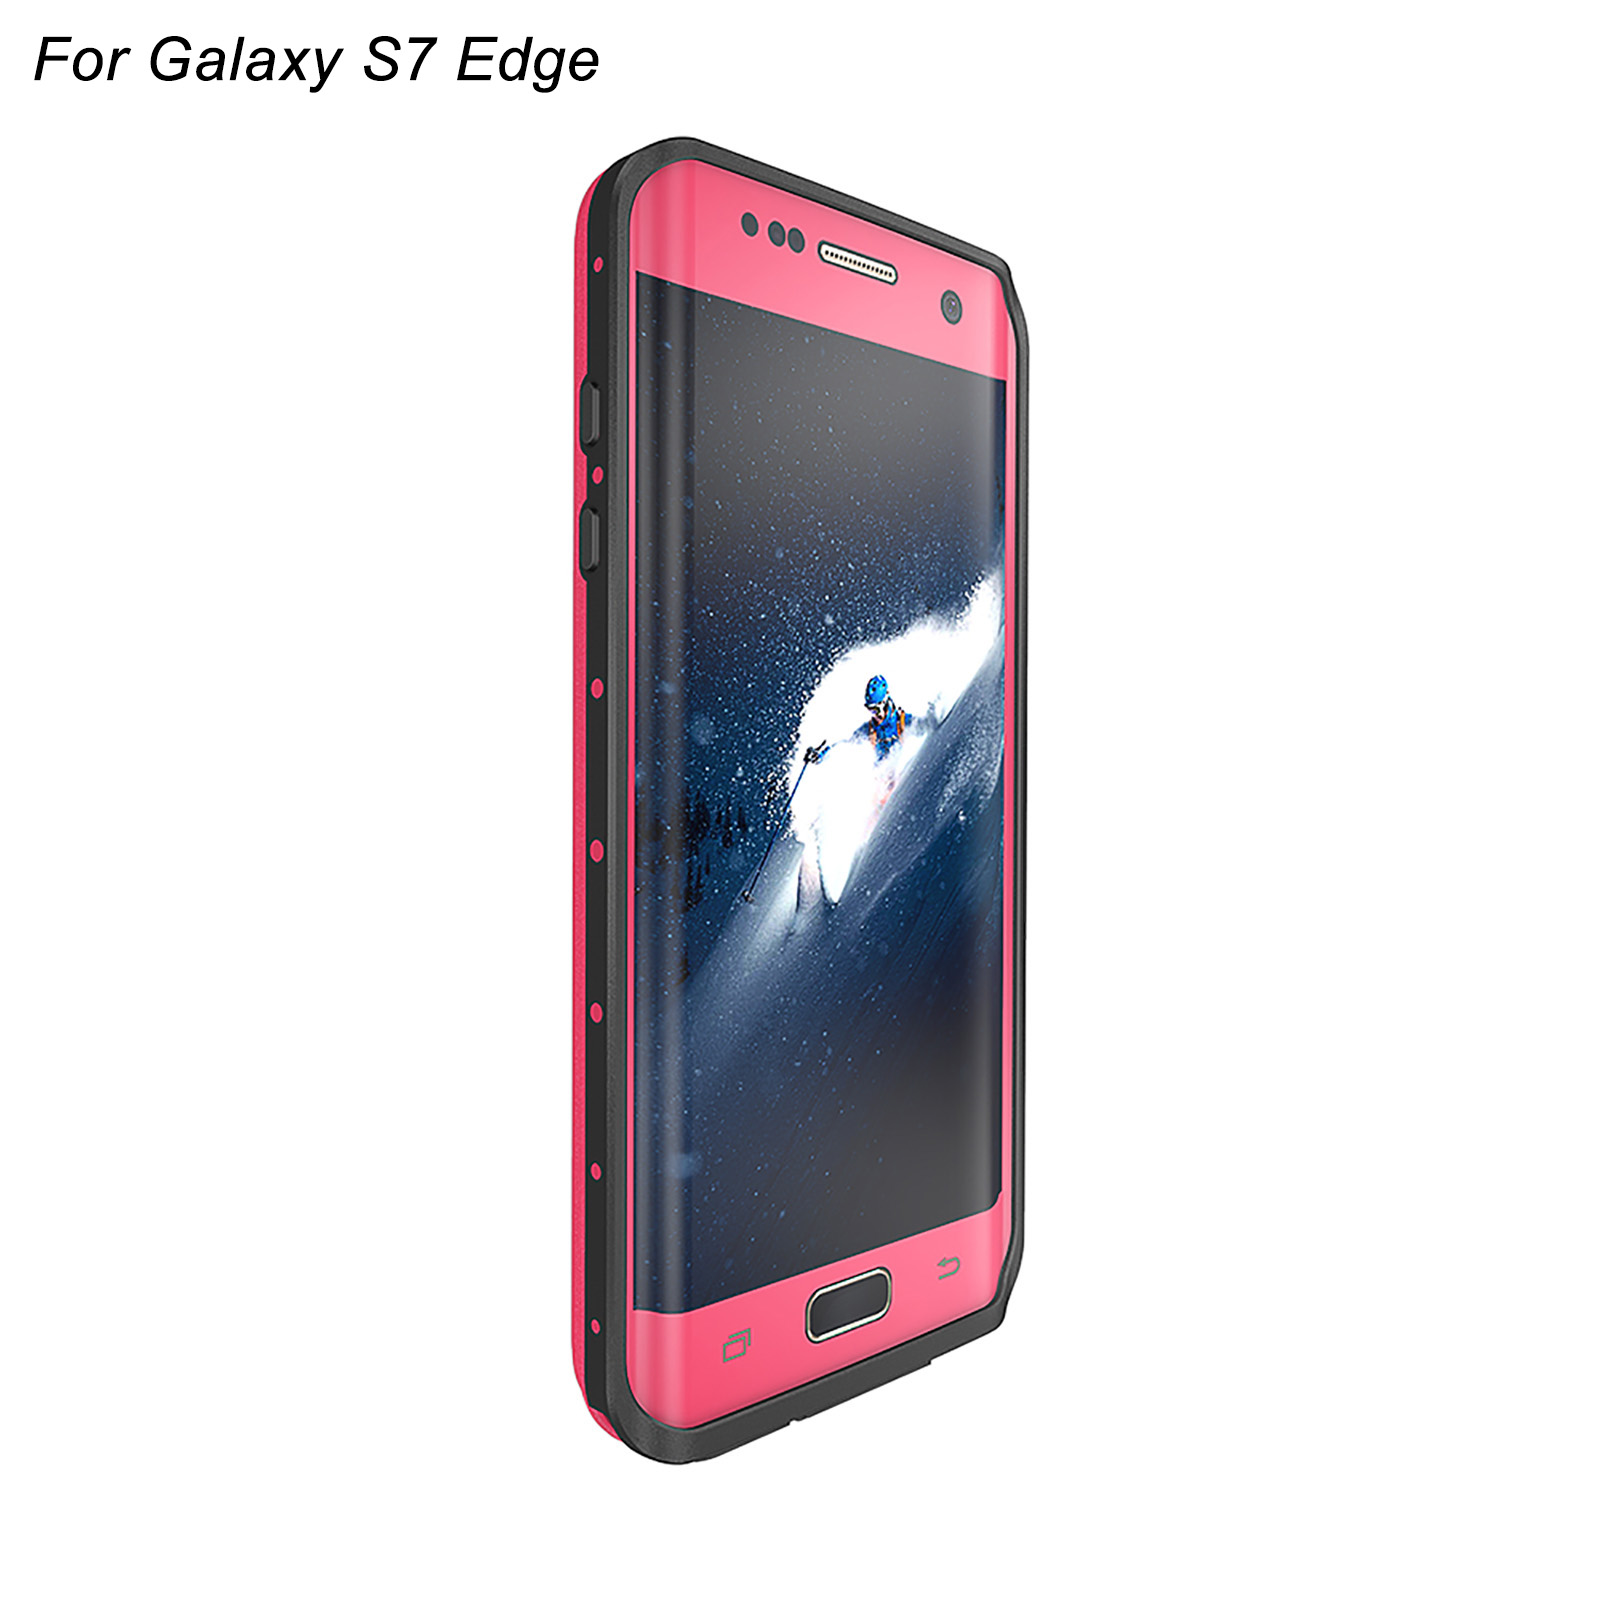 redpepper waterproof dirt proof rubber case cover for samsung galaxy s7 s7 edge. Black Bedroom Furniture Sets. Home Design Ideas